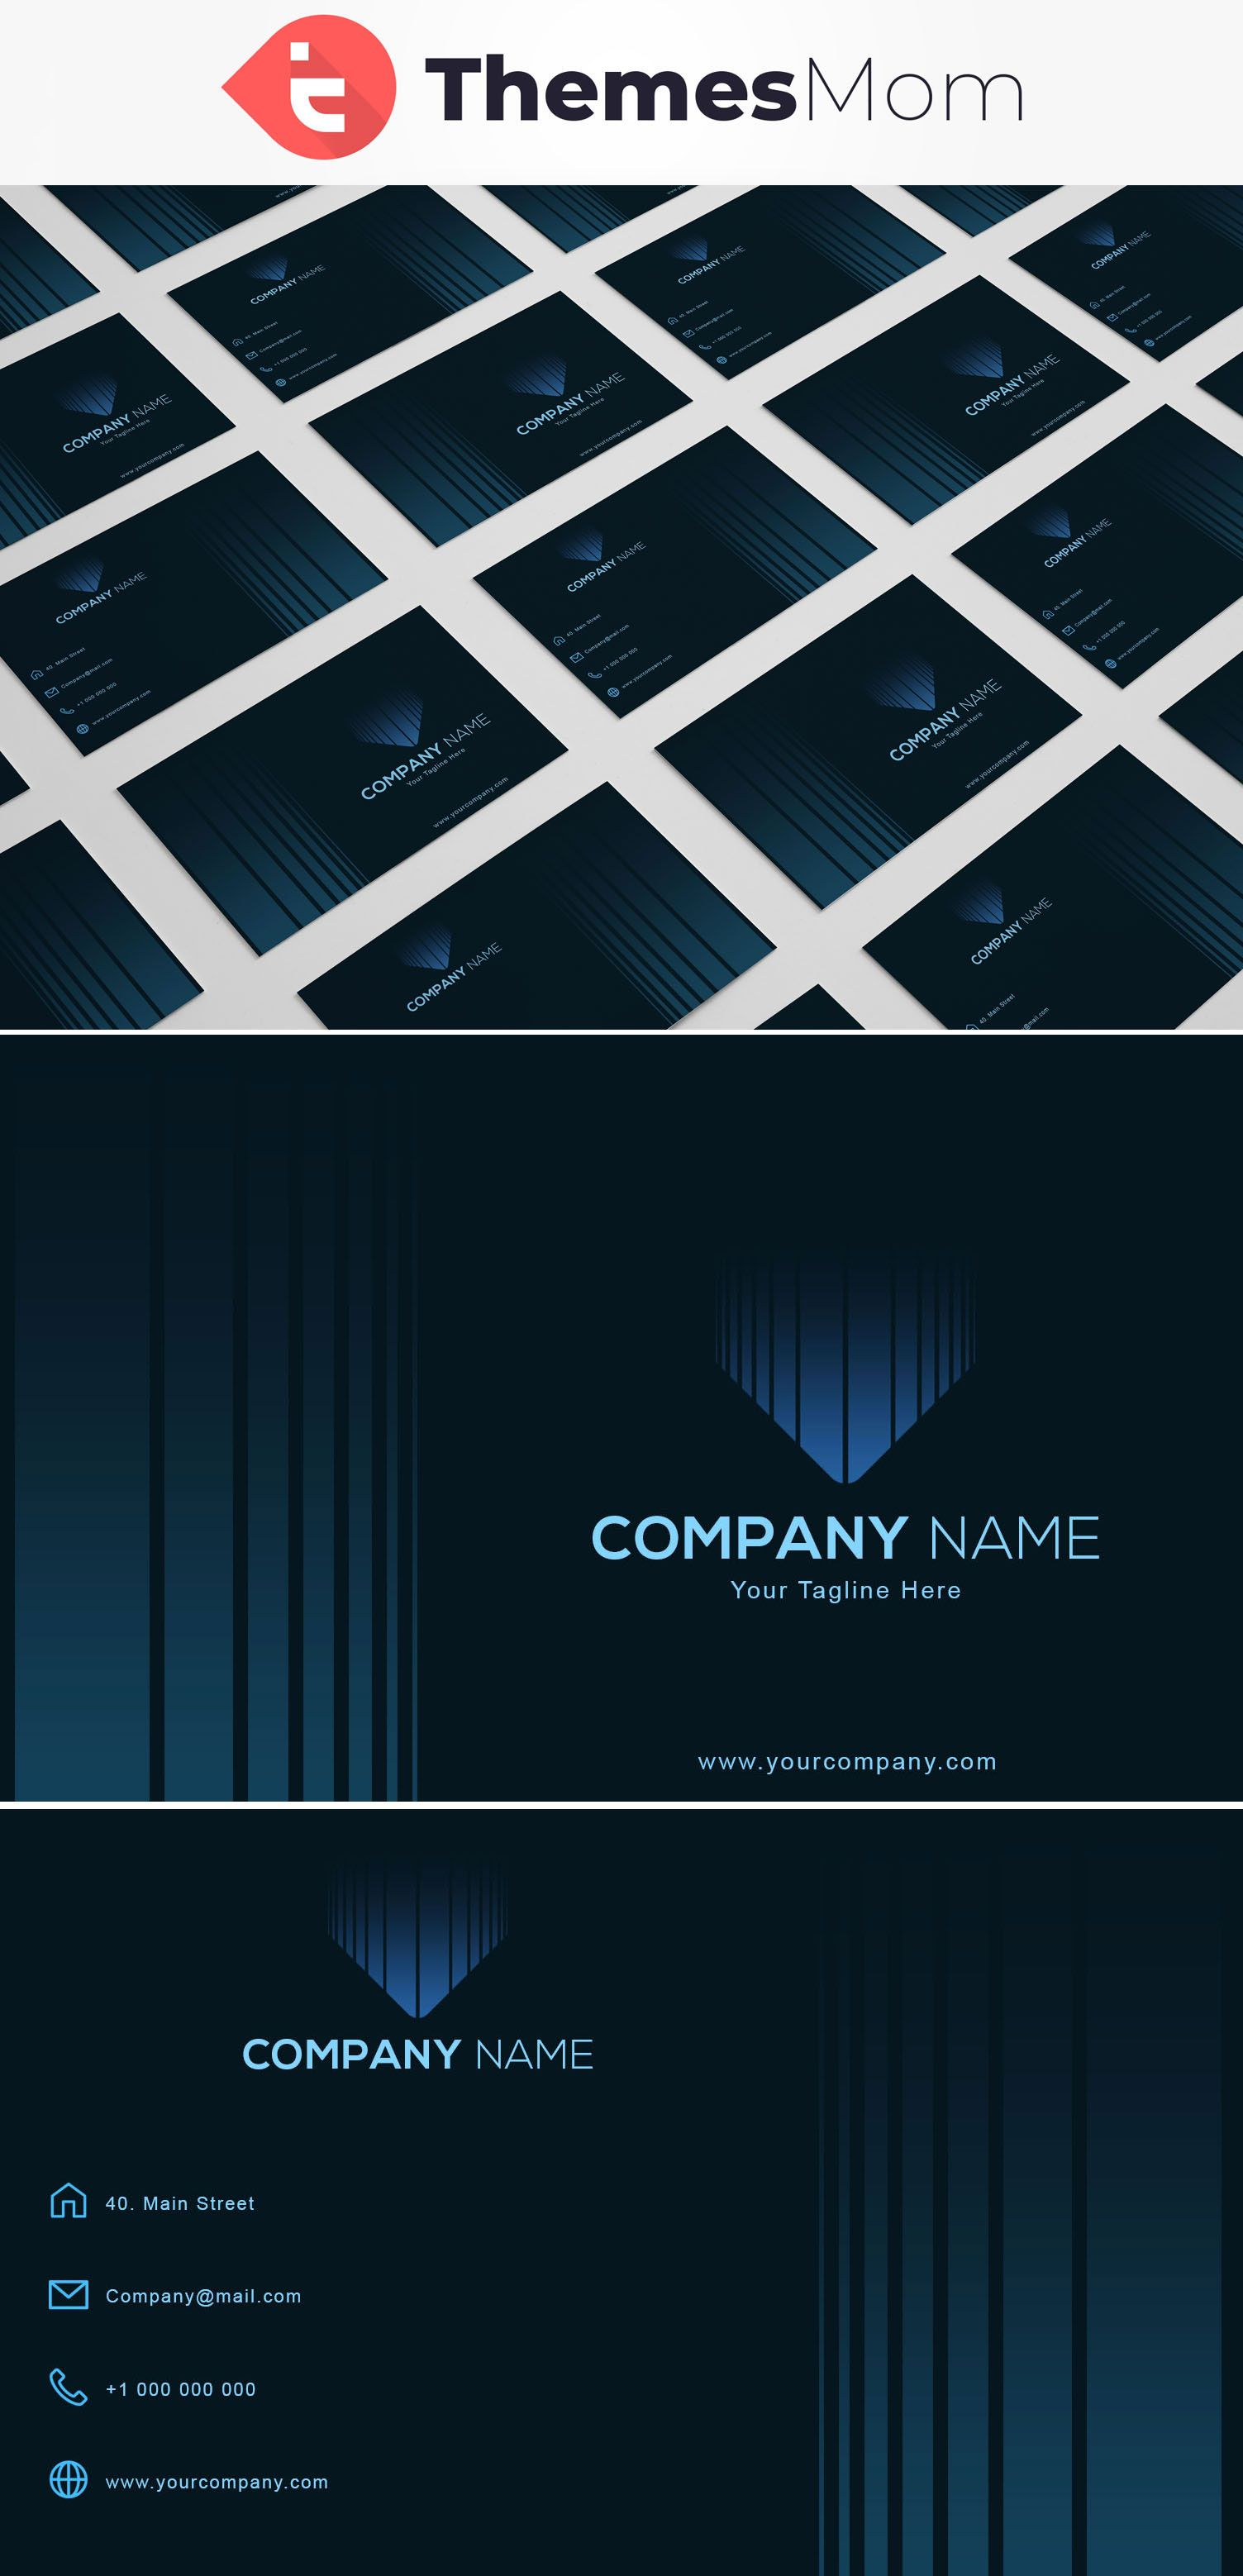 Pro Business Visiting Card With Images Free Business Card Templates Visiting Cards Free Business Cards